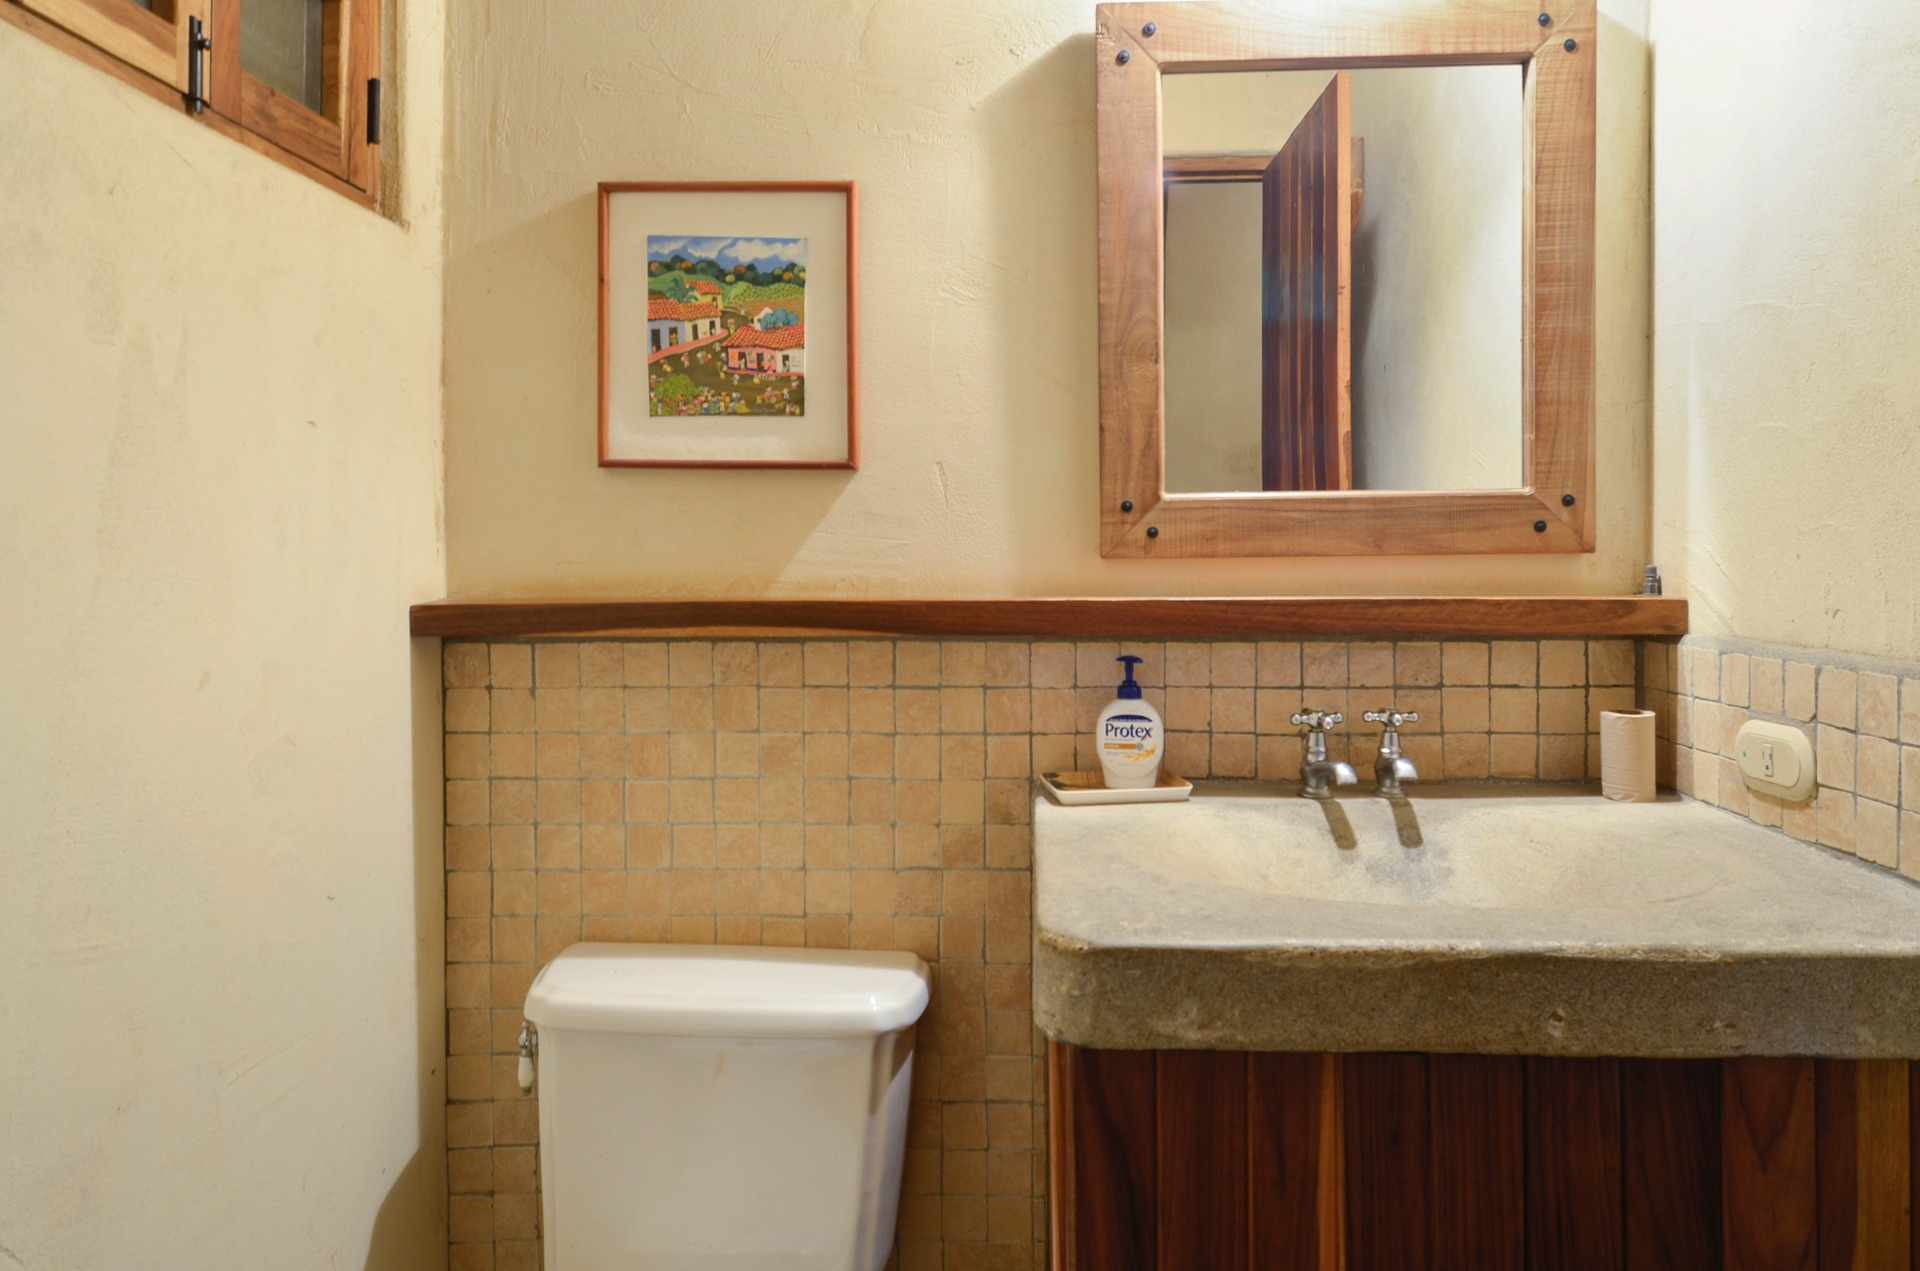 Bath accented with beautiful wood elements